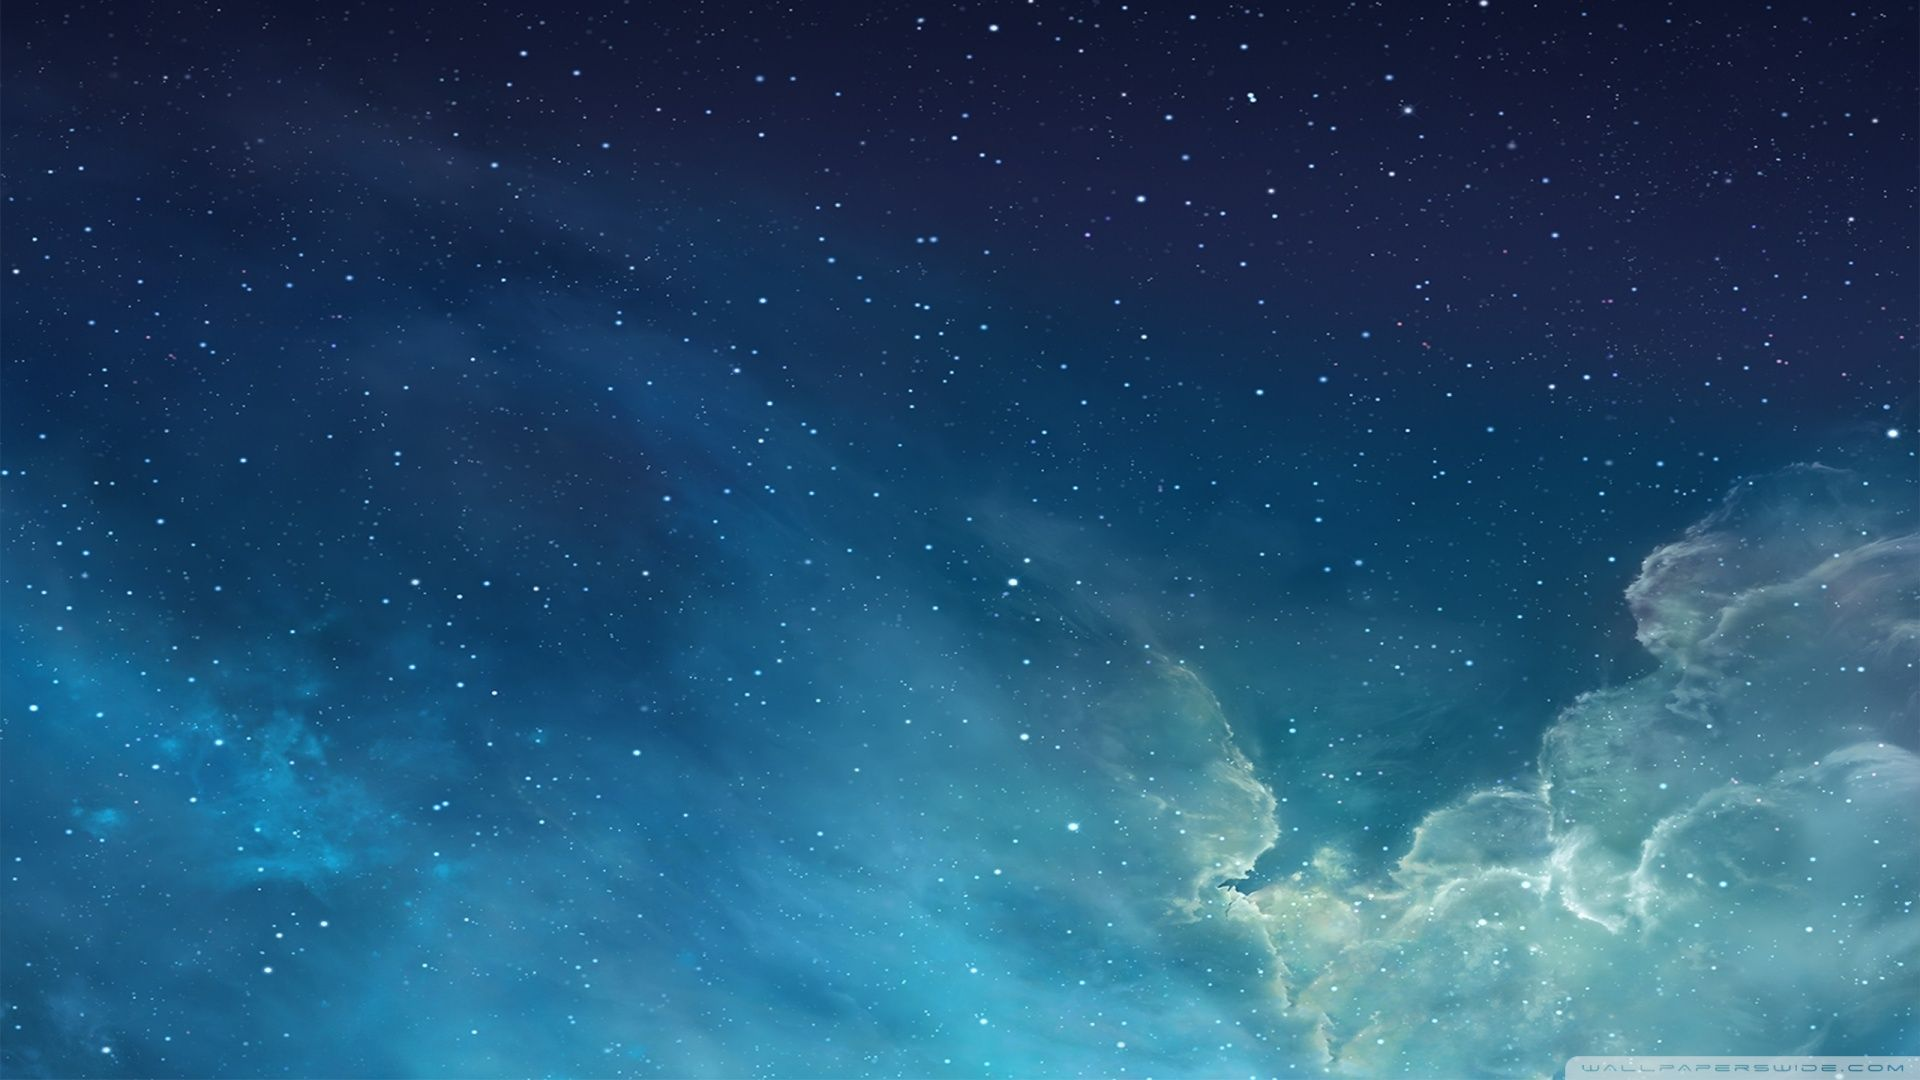 Space Hd Wallpapers Mac Hd Wallpaper Desktop Galaxy